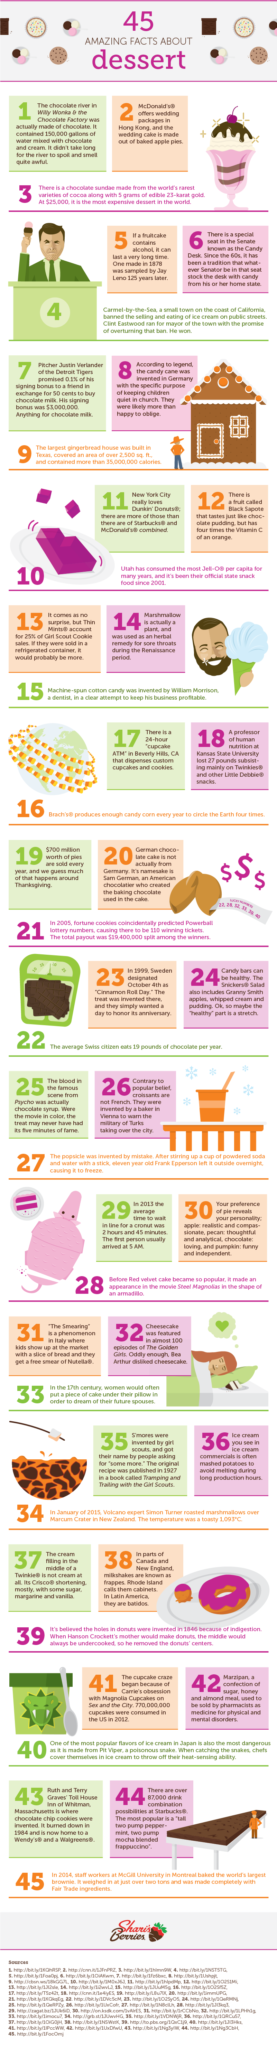 A whole collection of amazing facts about dessert.